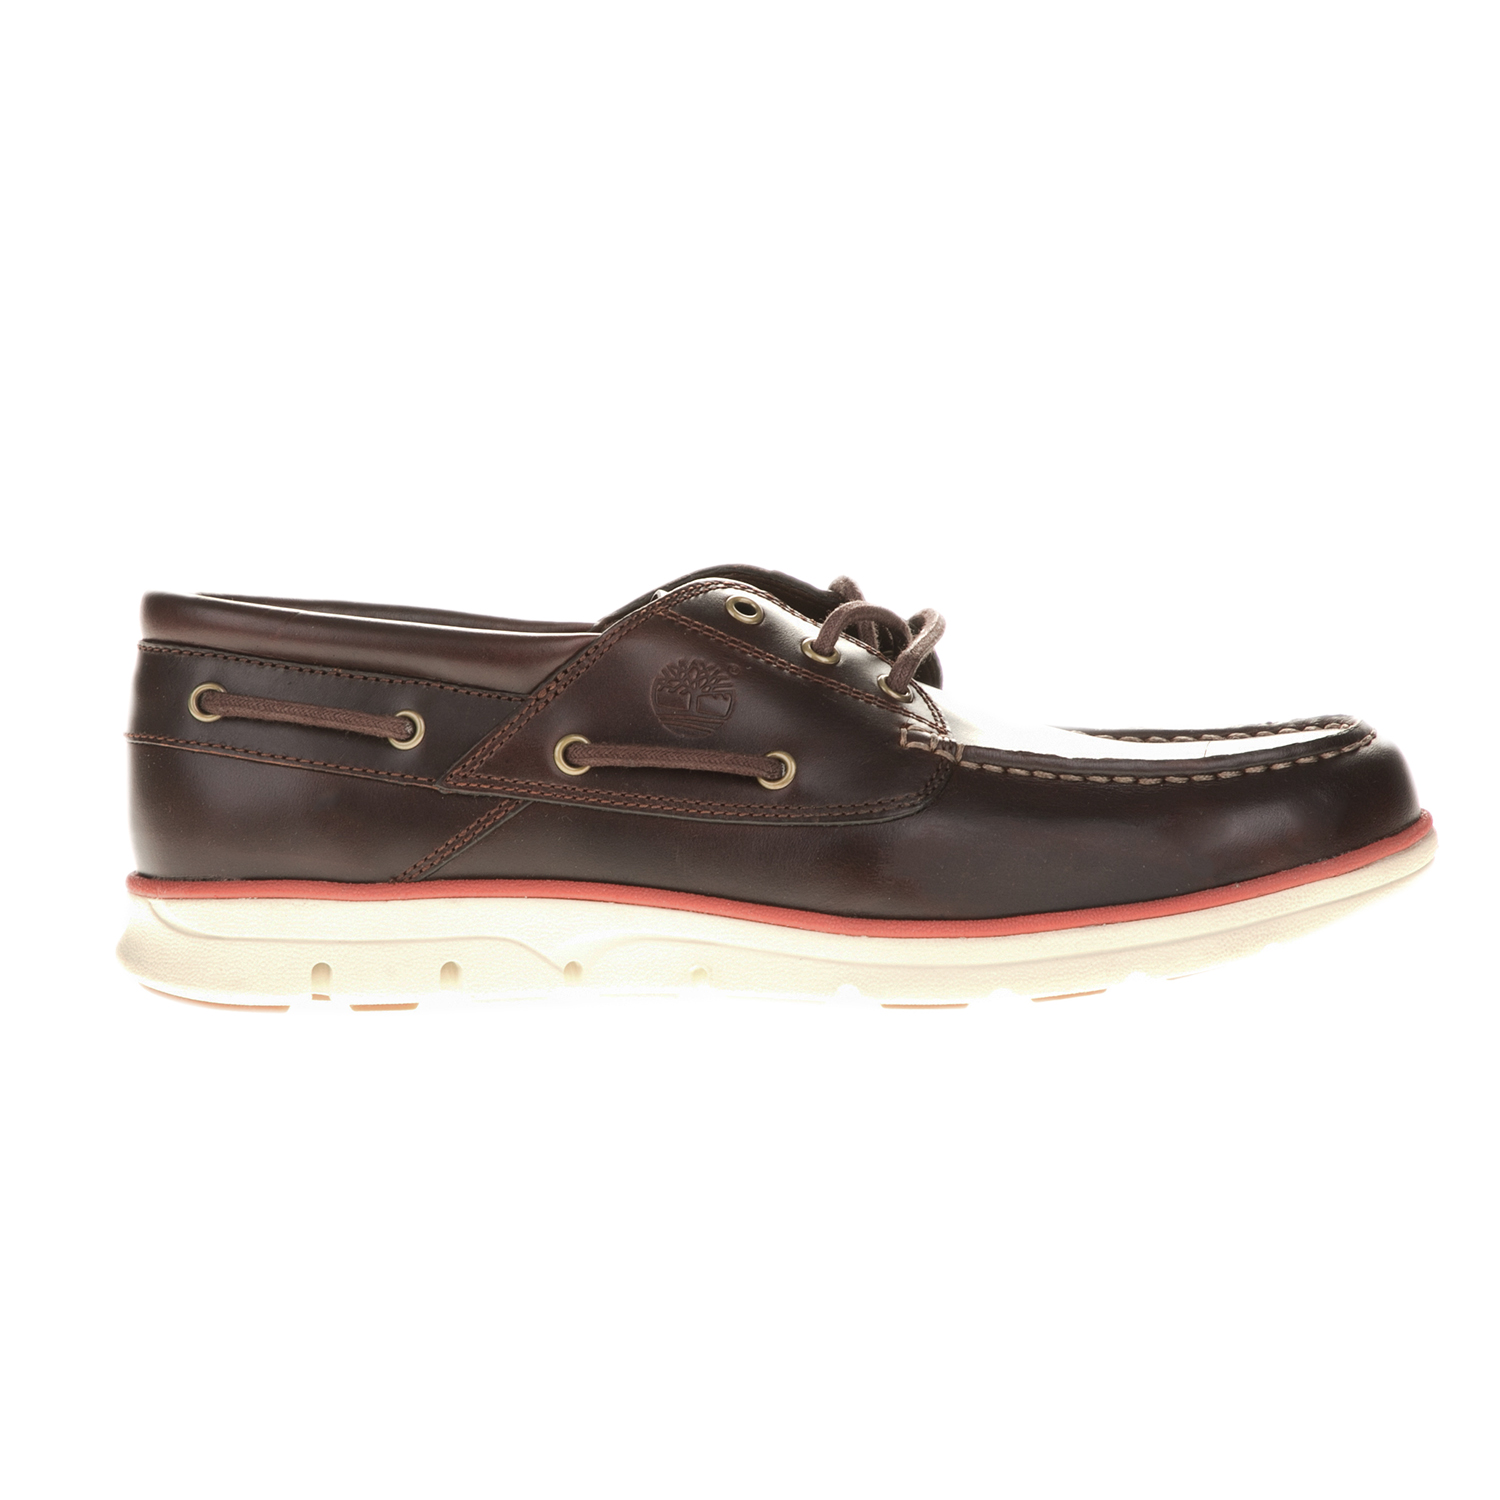 TIMBERLAND - Ανδρικά boat shoes TIMBERLAND A1HD9 καφέ ανδρικά παπούτσια boat shoes